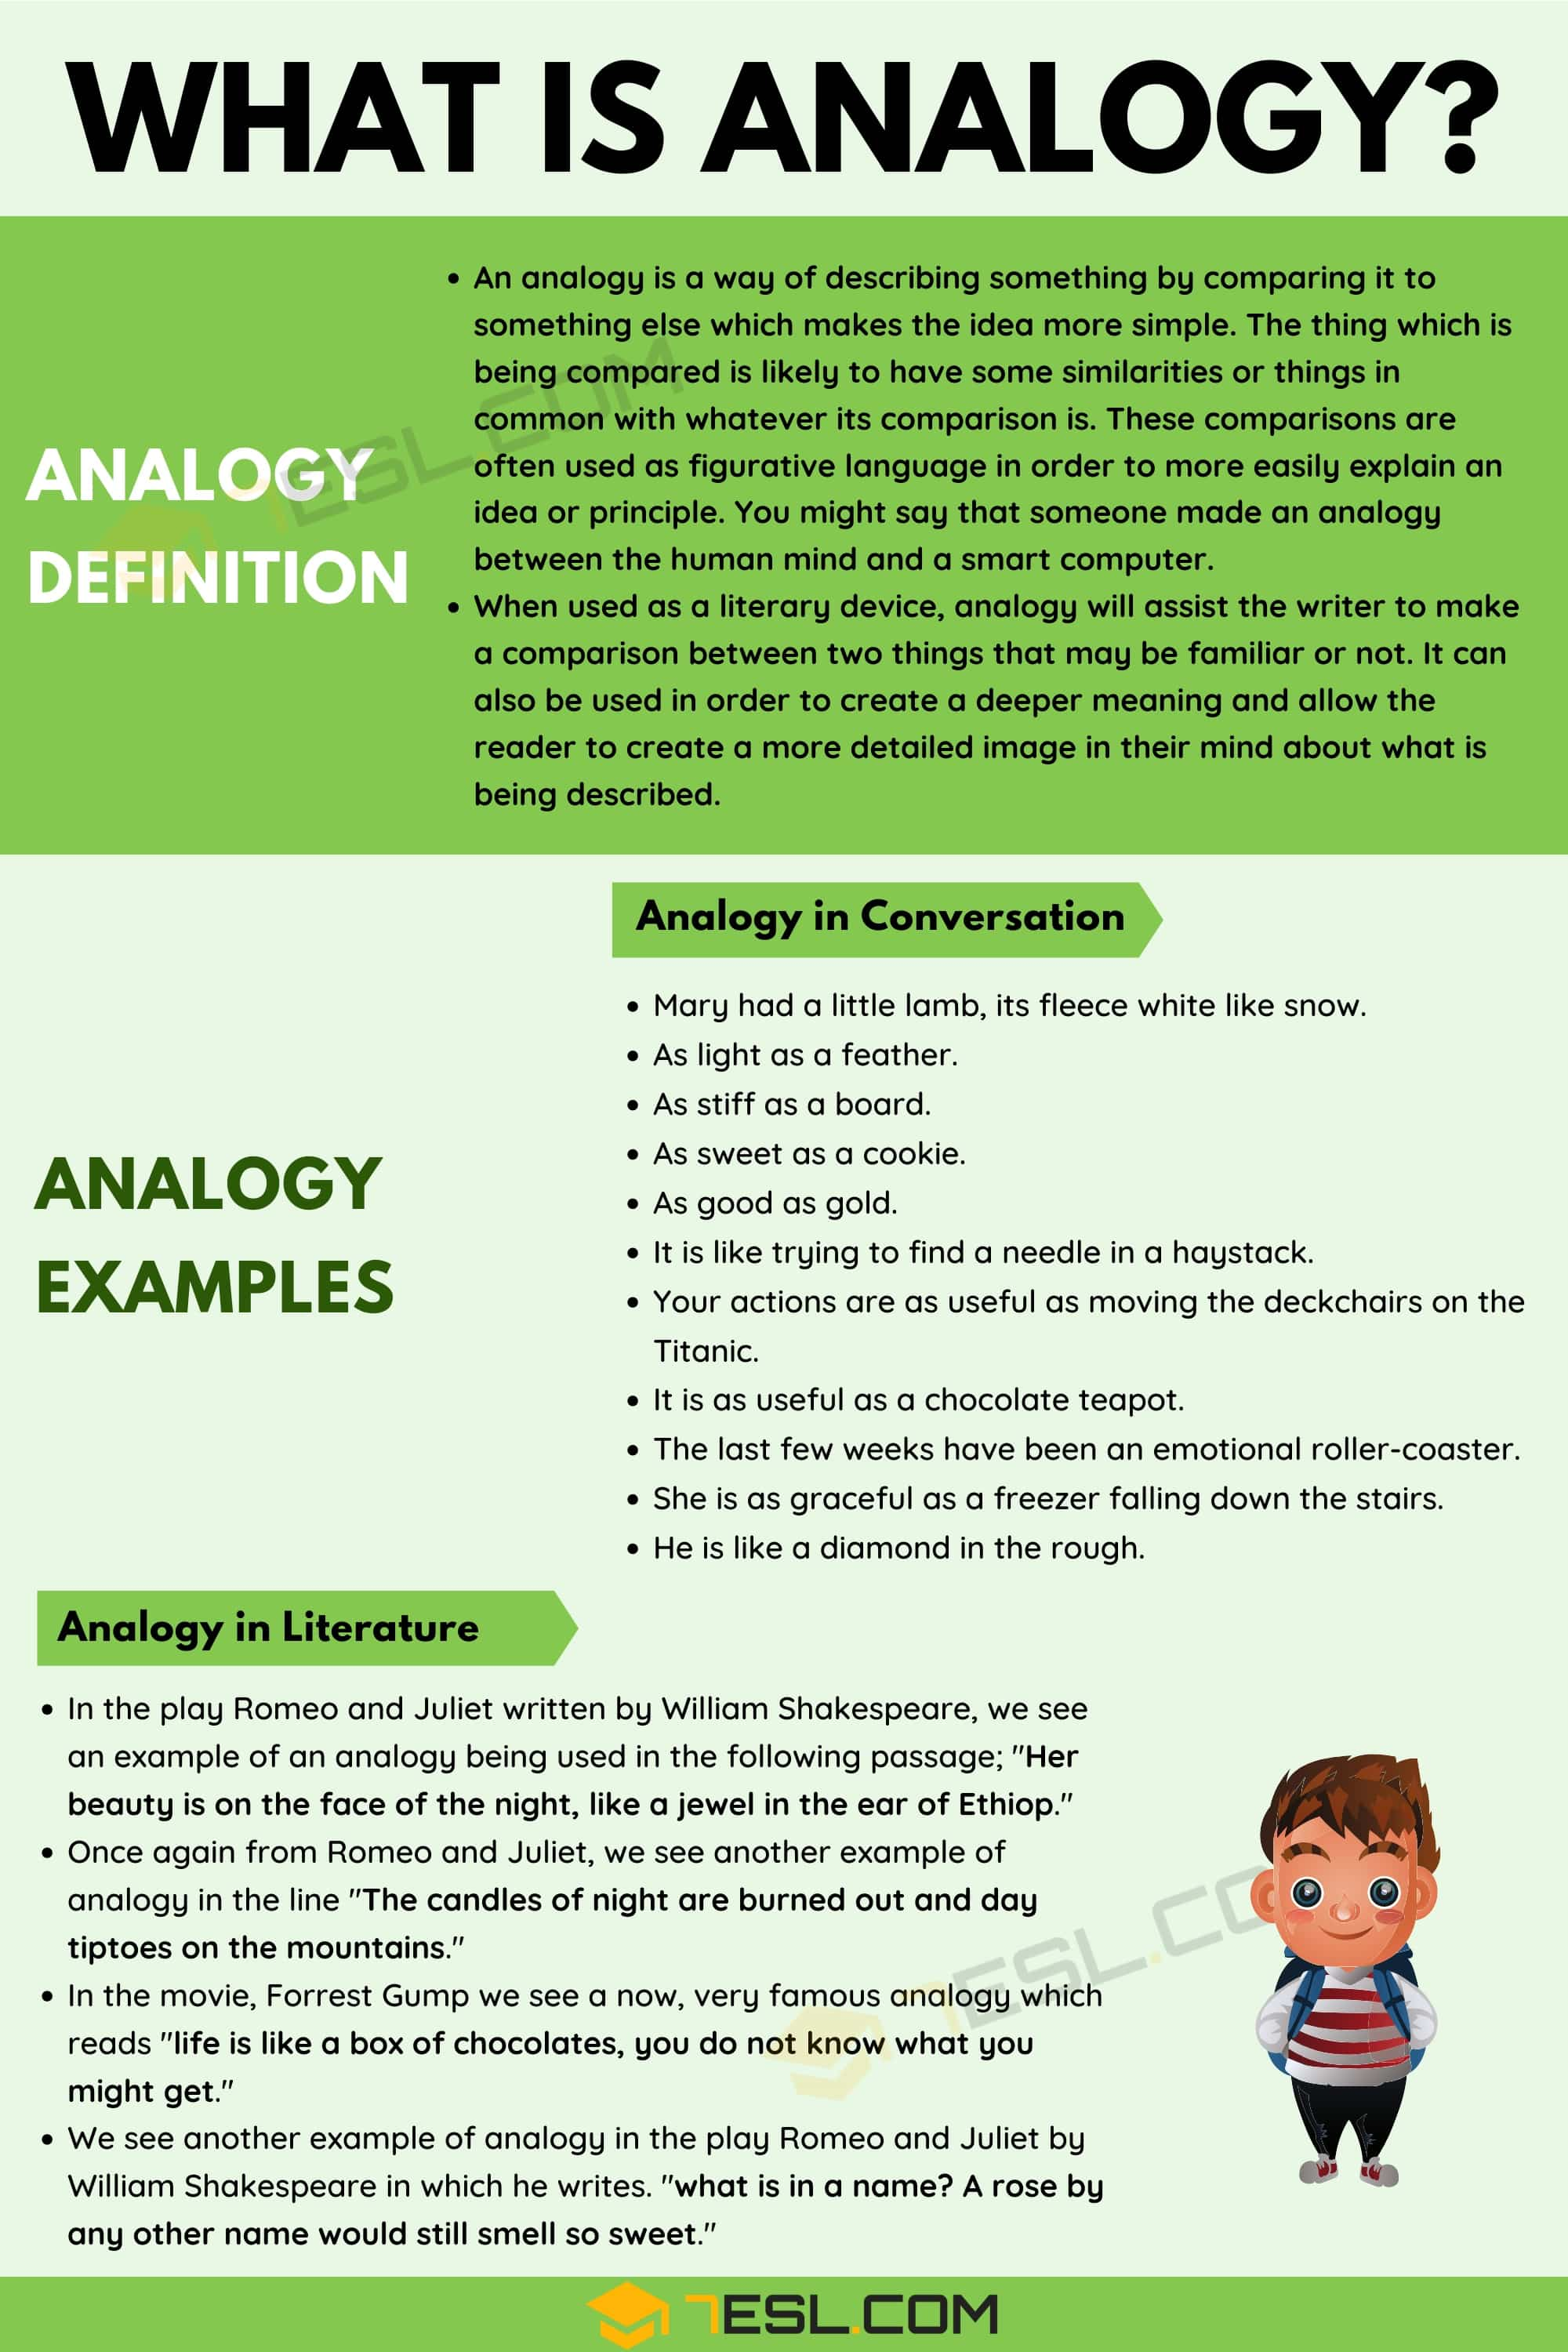 Ogy Definition And Examples Ofogy In